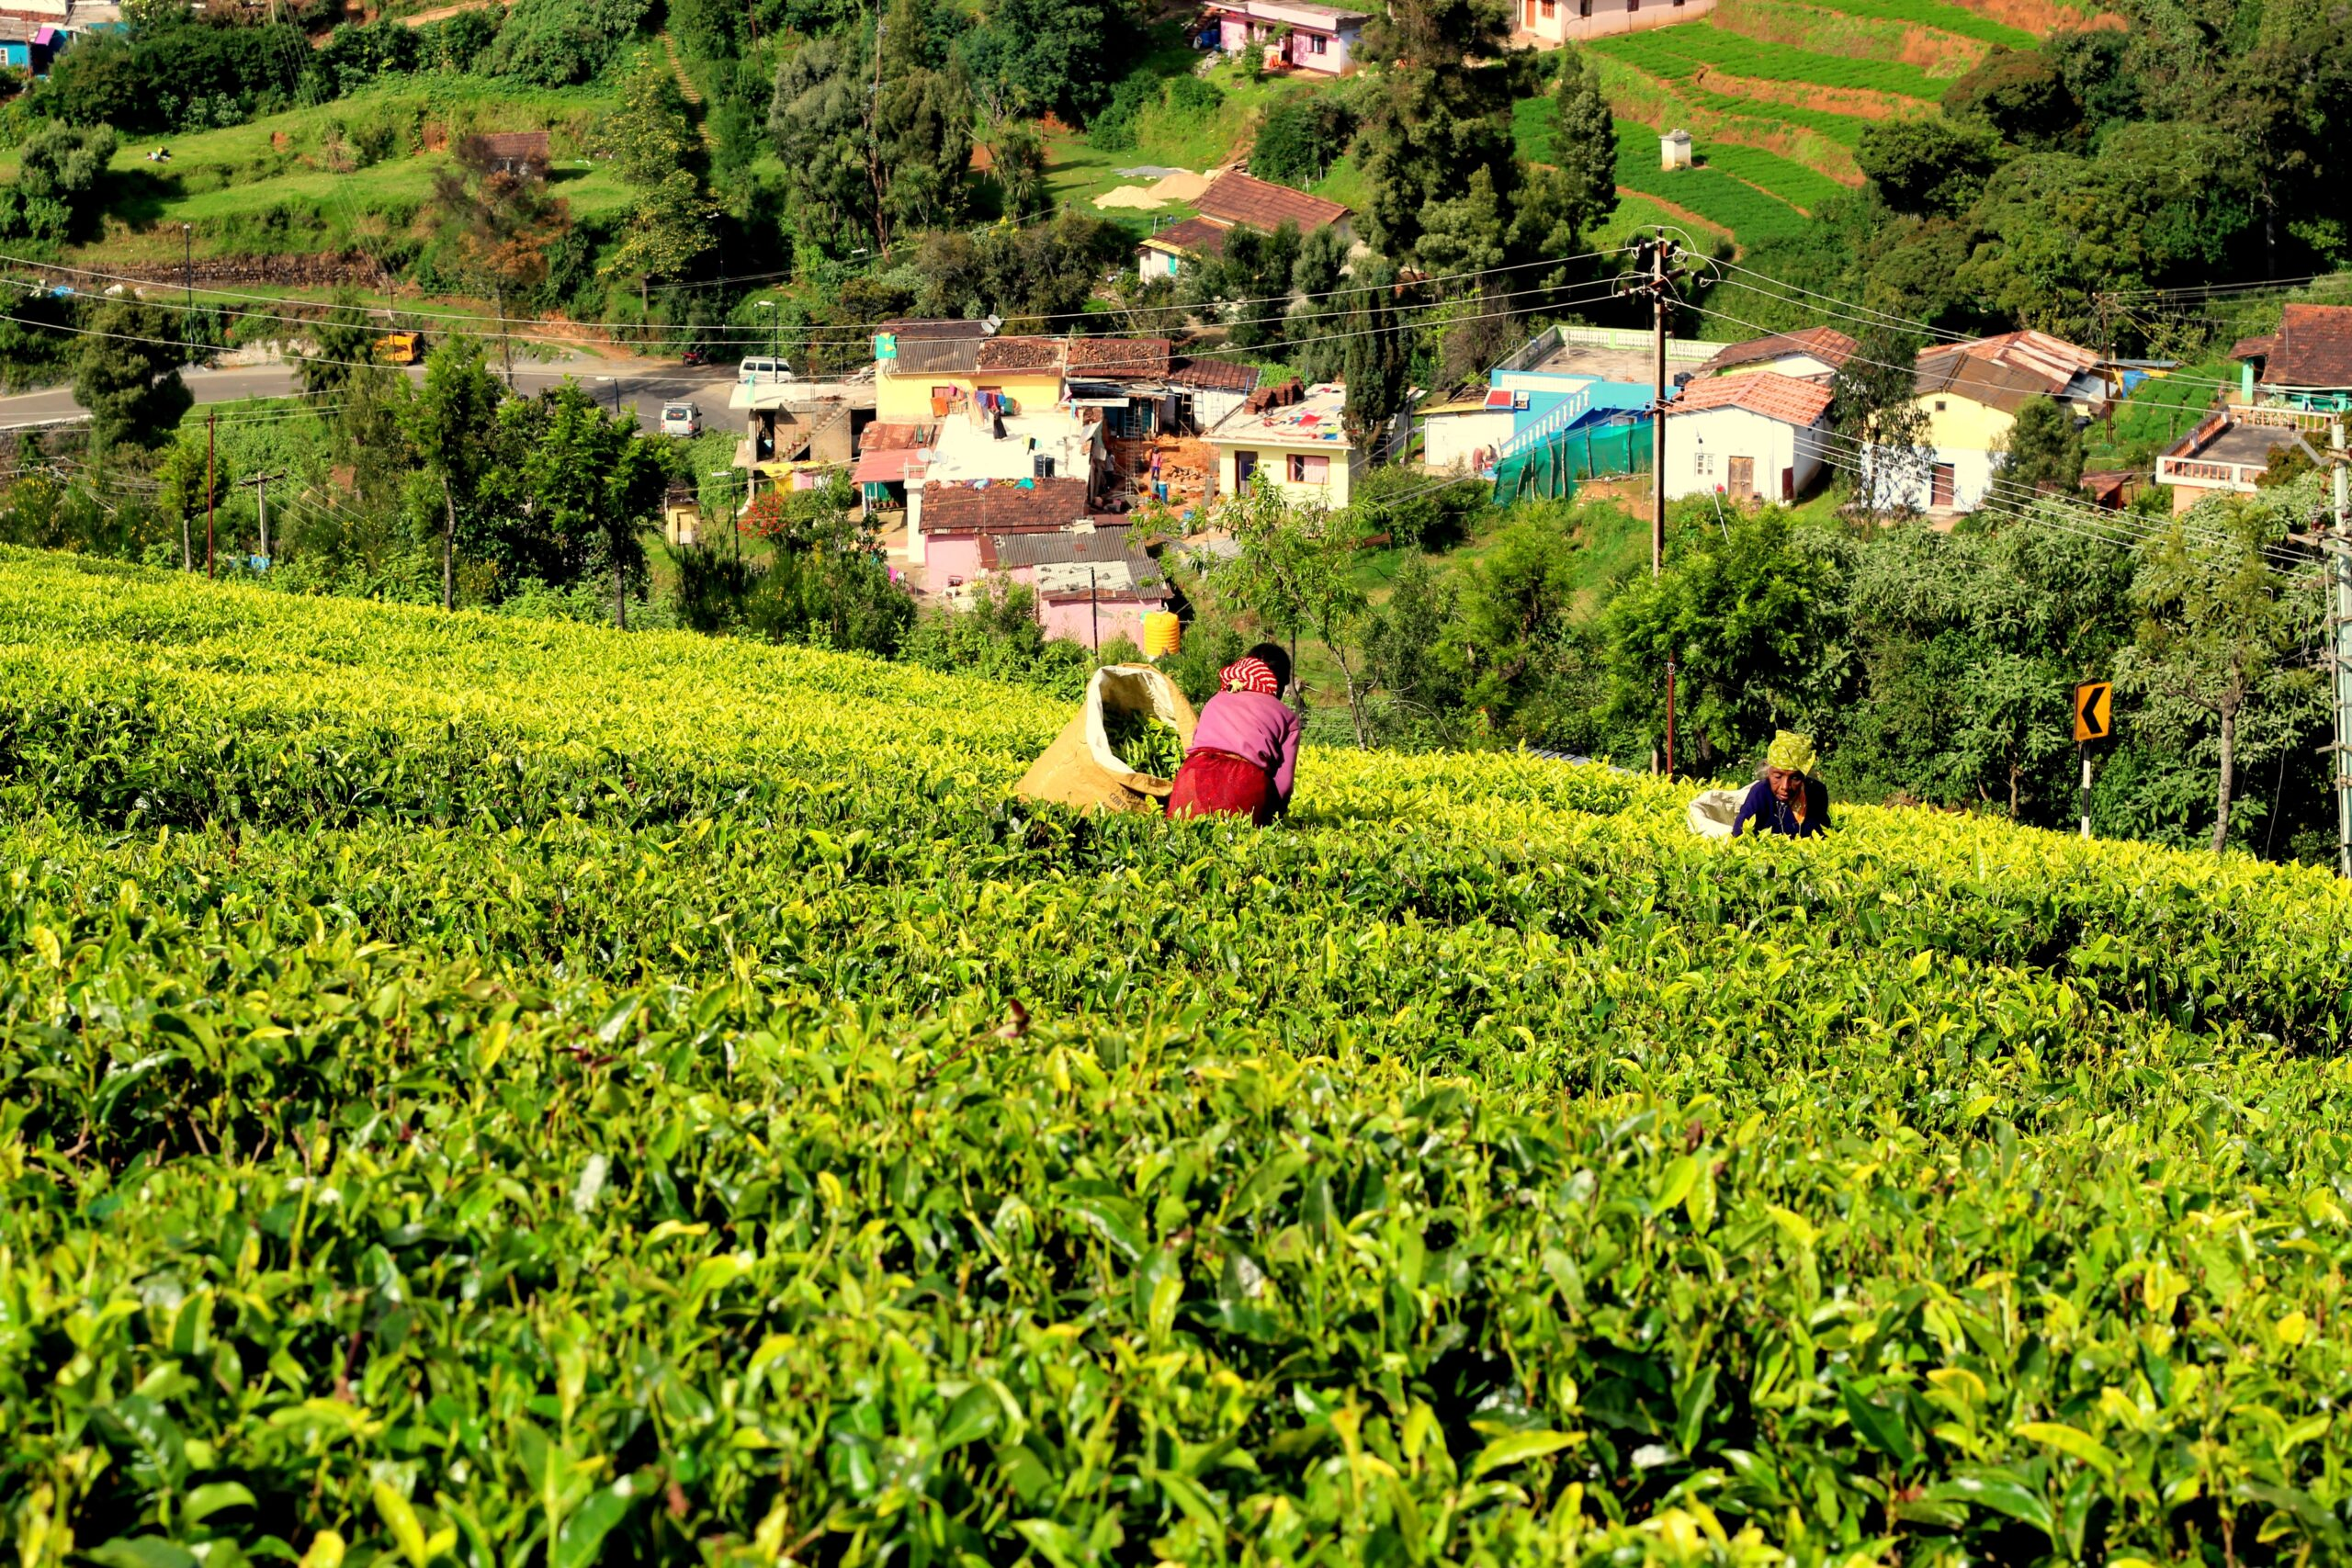 A Tea Field in Doddabetta Peak, Ooty, Tamil Nadu, India